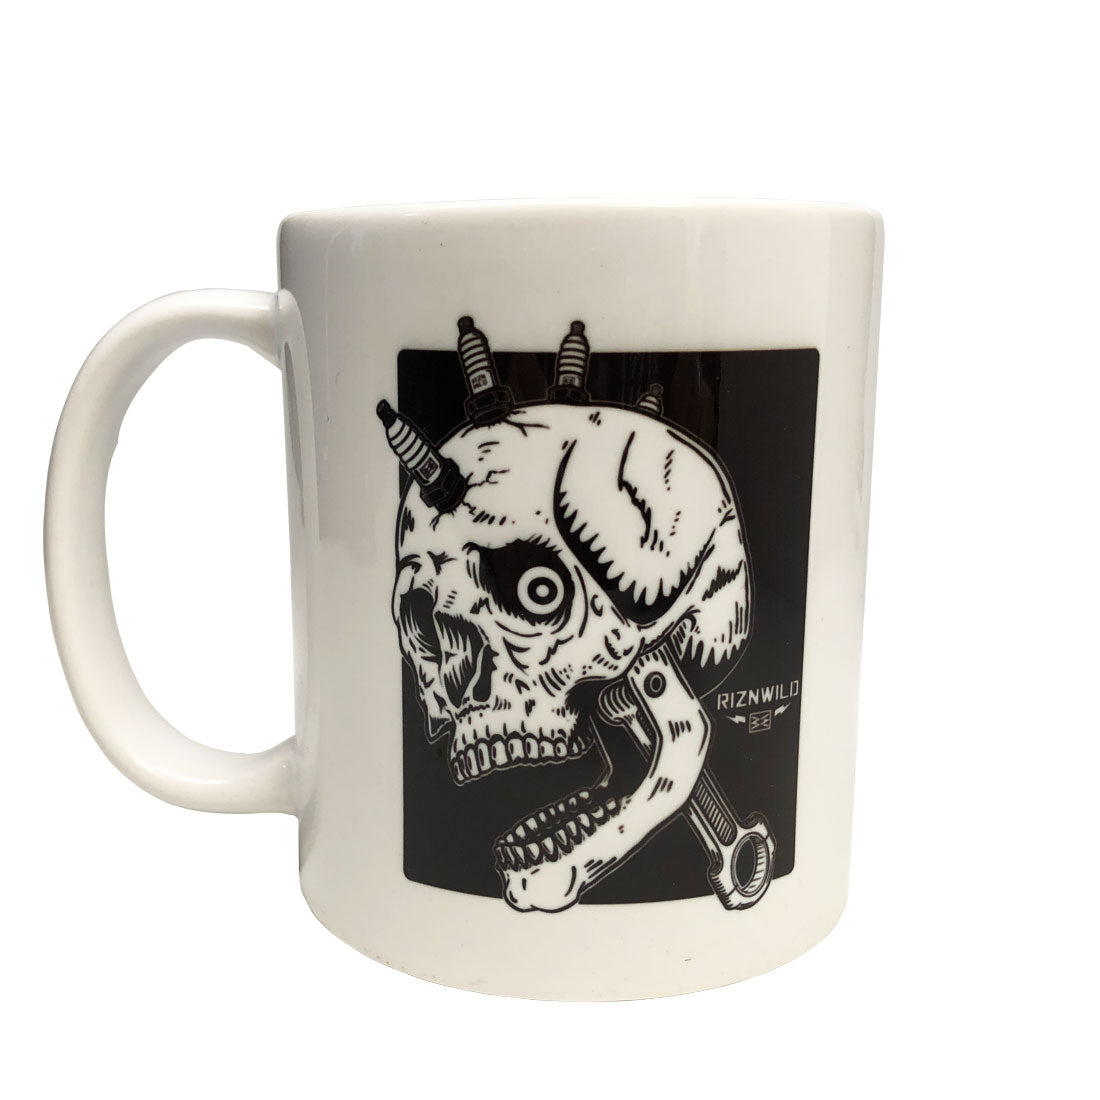 RIZNWILD | Moto head coffee mug spark plugs biker